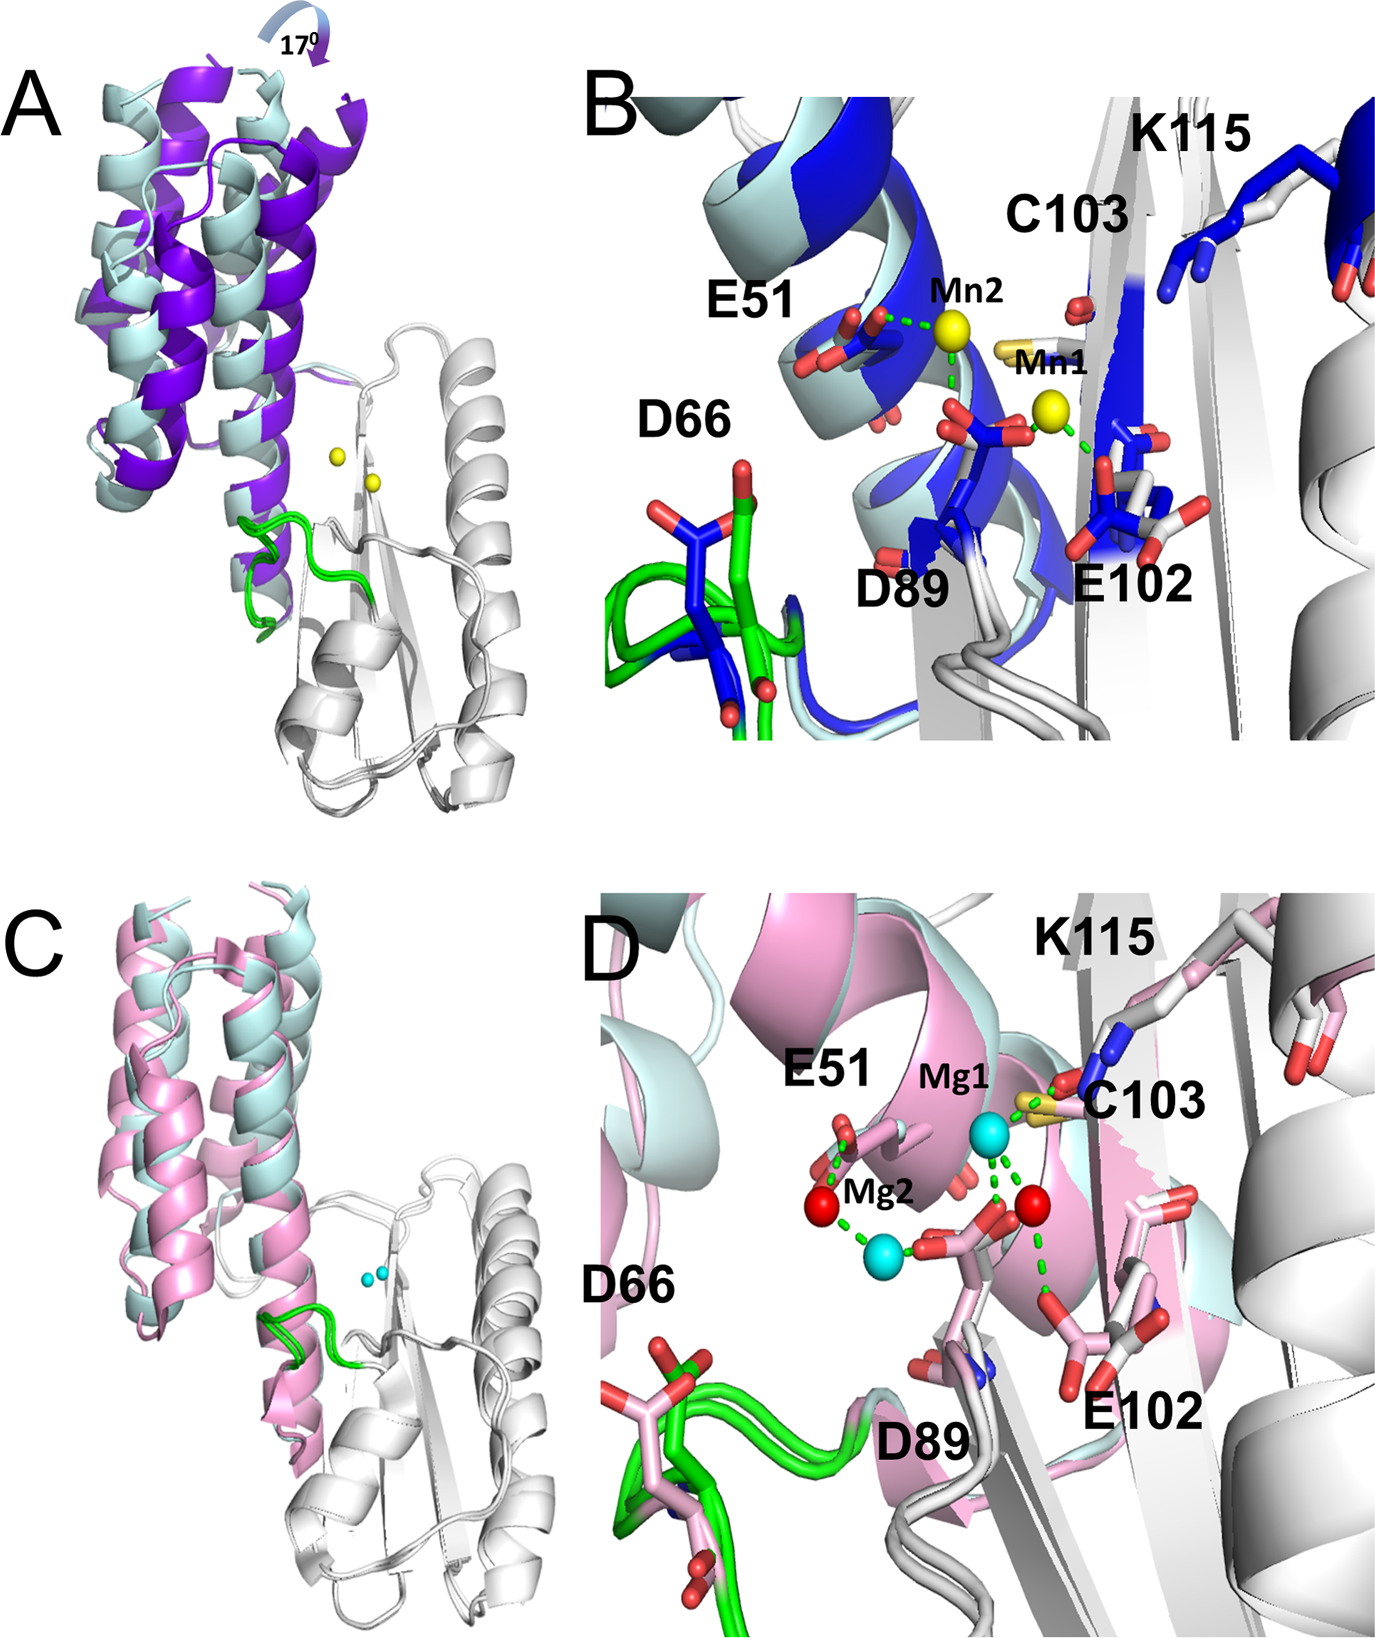 PLOS Pathogens: Comparative Structural and Functional Analysis of.